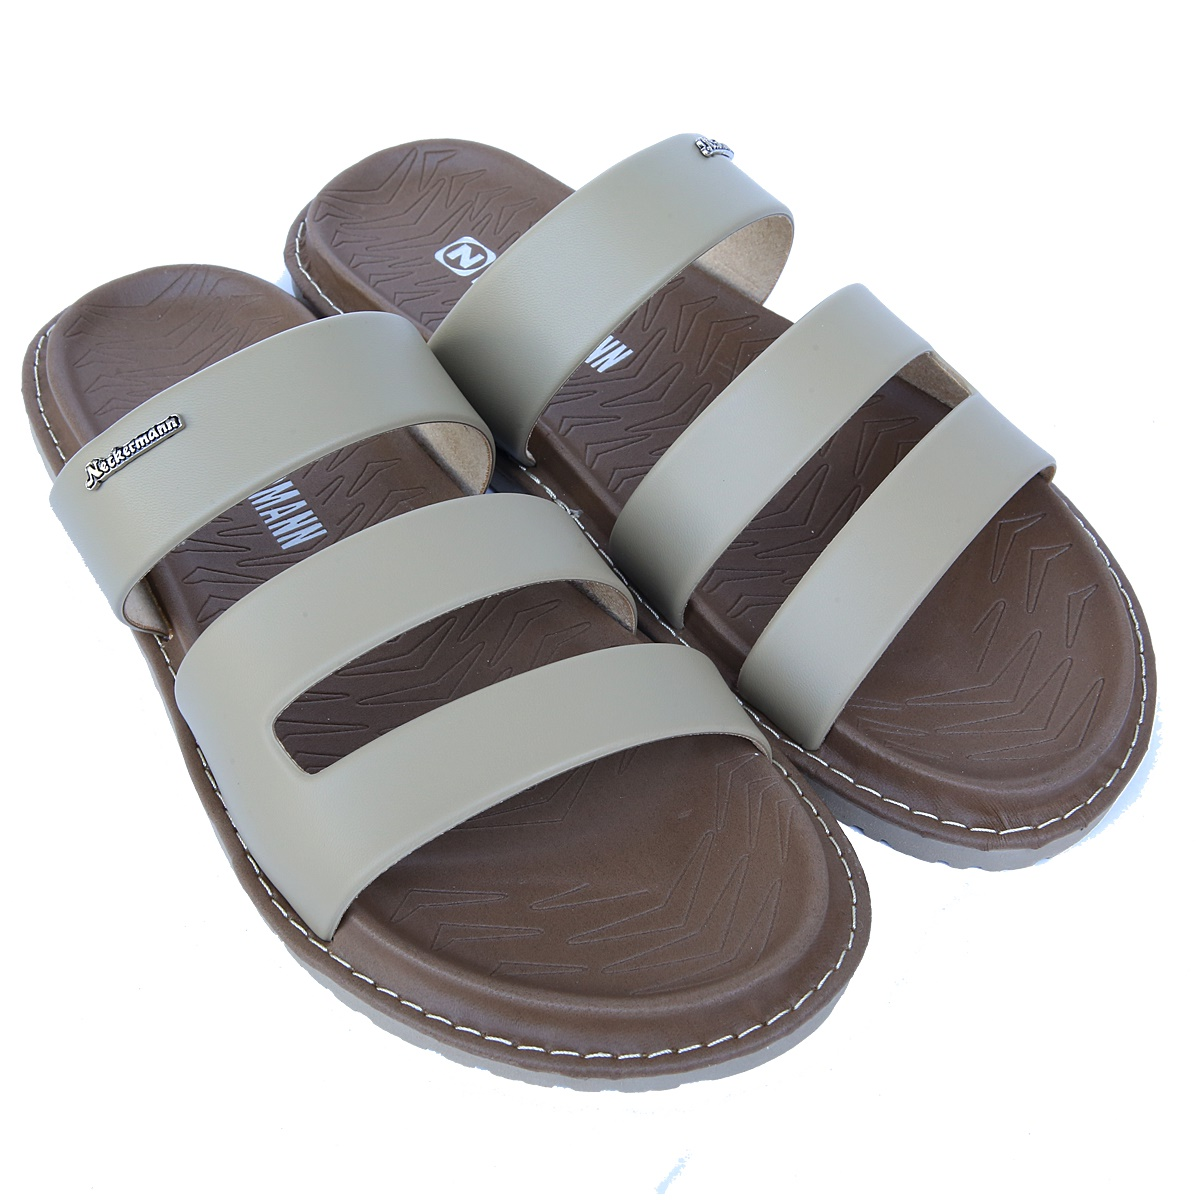 Fresno 774 and 775 are available in 4 colors: - Black - Dark chocolate - Ivory - Light brown. Size of outsole chart (bottom foot sandals): - 38: 26.6 cm